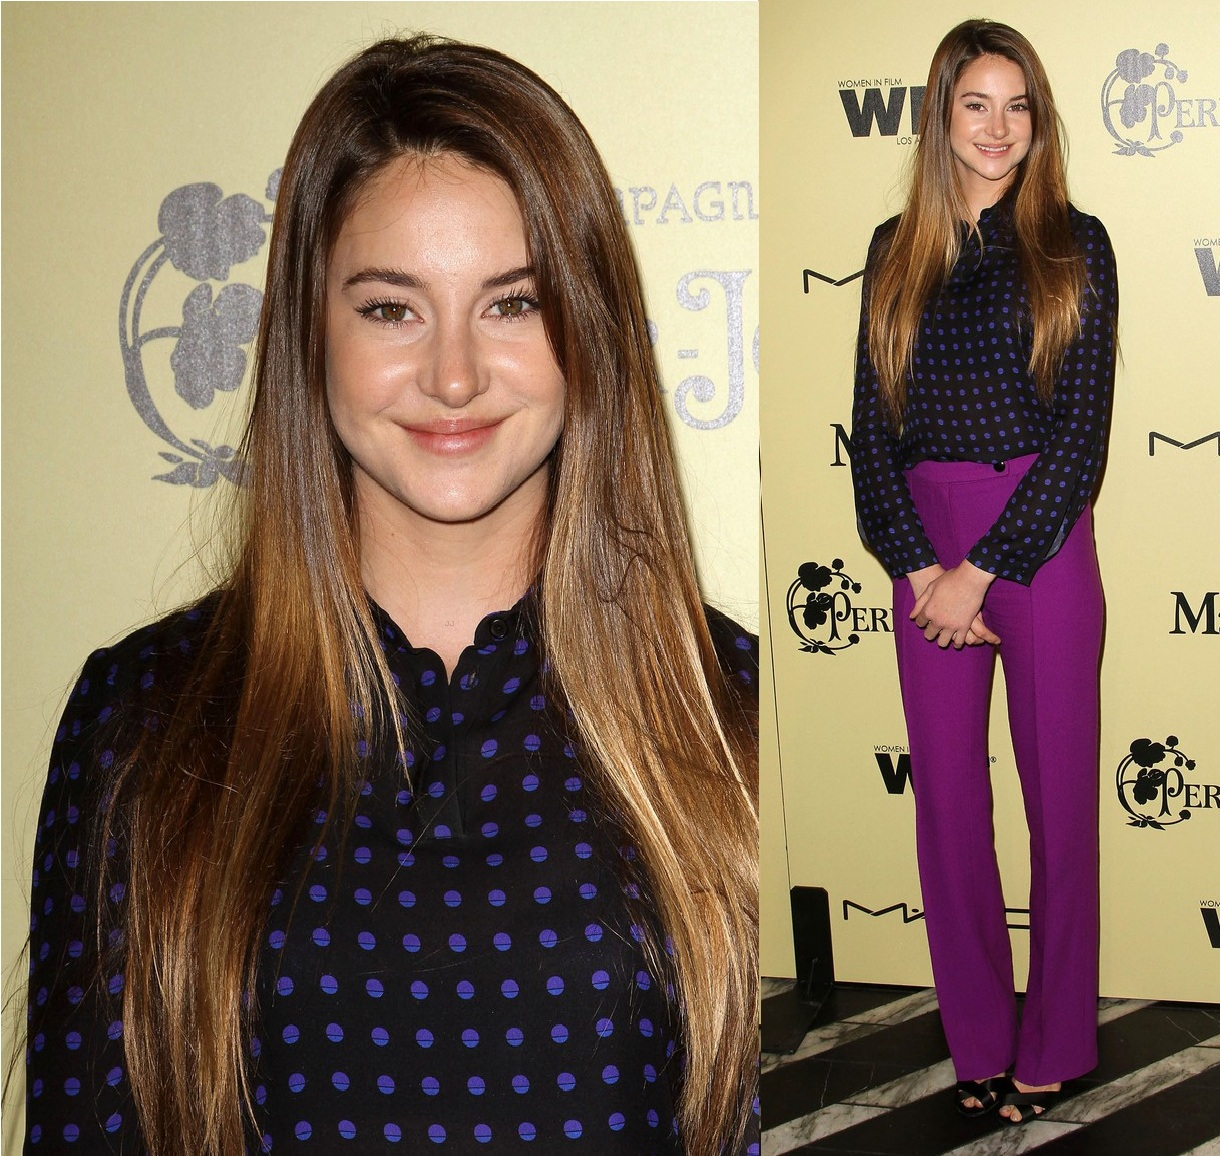 http://2.bp.blogspot.com/-iRSDCdsuJj0/T0kP9U0_dTI/AAAAAAAAFHs/eAyGQfpL9Eo/s1600/Shailene+Woodley+in+Honor+Fall+2012+-+Women+In+Film+Pre-Oscar+Cocktail+Party.jpg